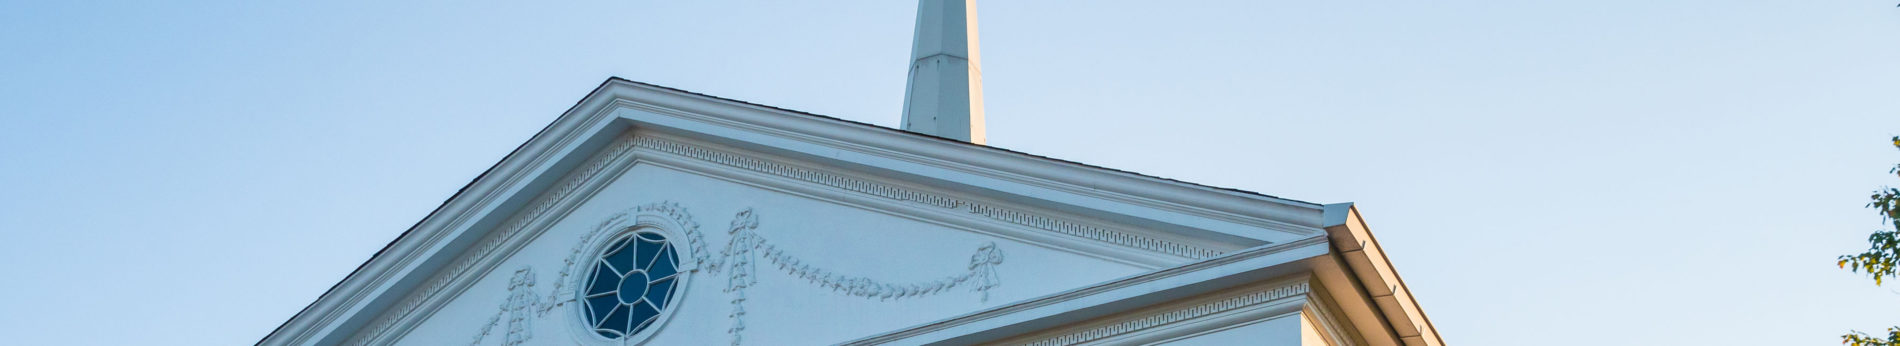 Exterior detail shot of Catonsville Presbyterian Church, showing roofline, decorative window, and steeple.